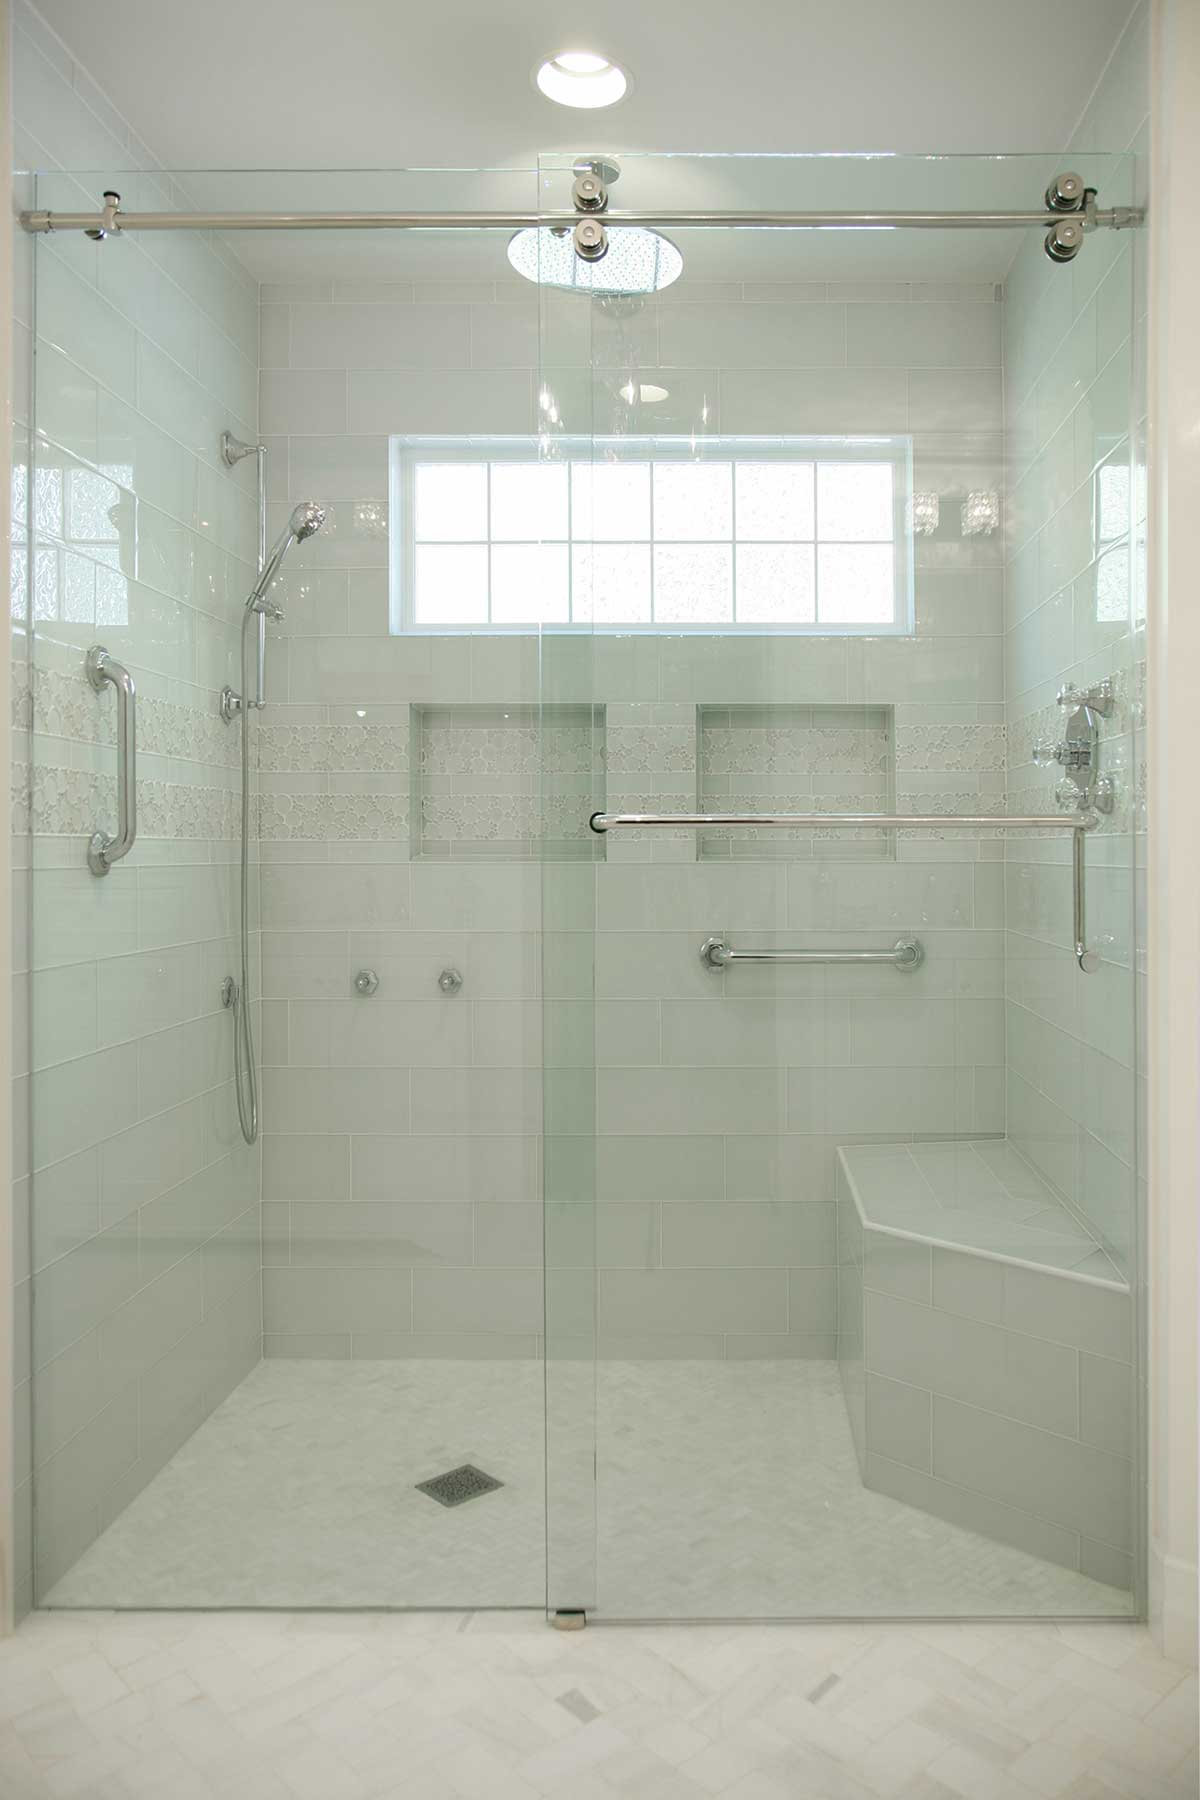 View of shower through frameless shower doors